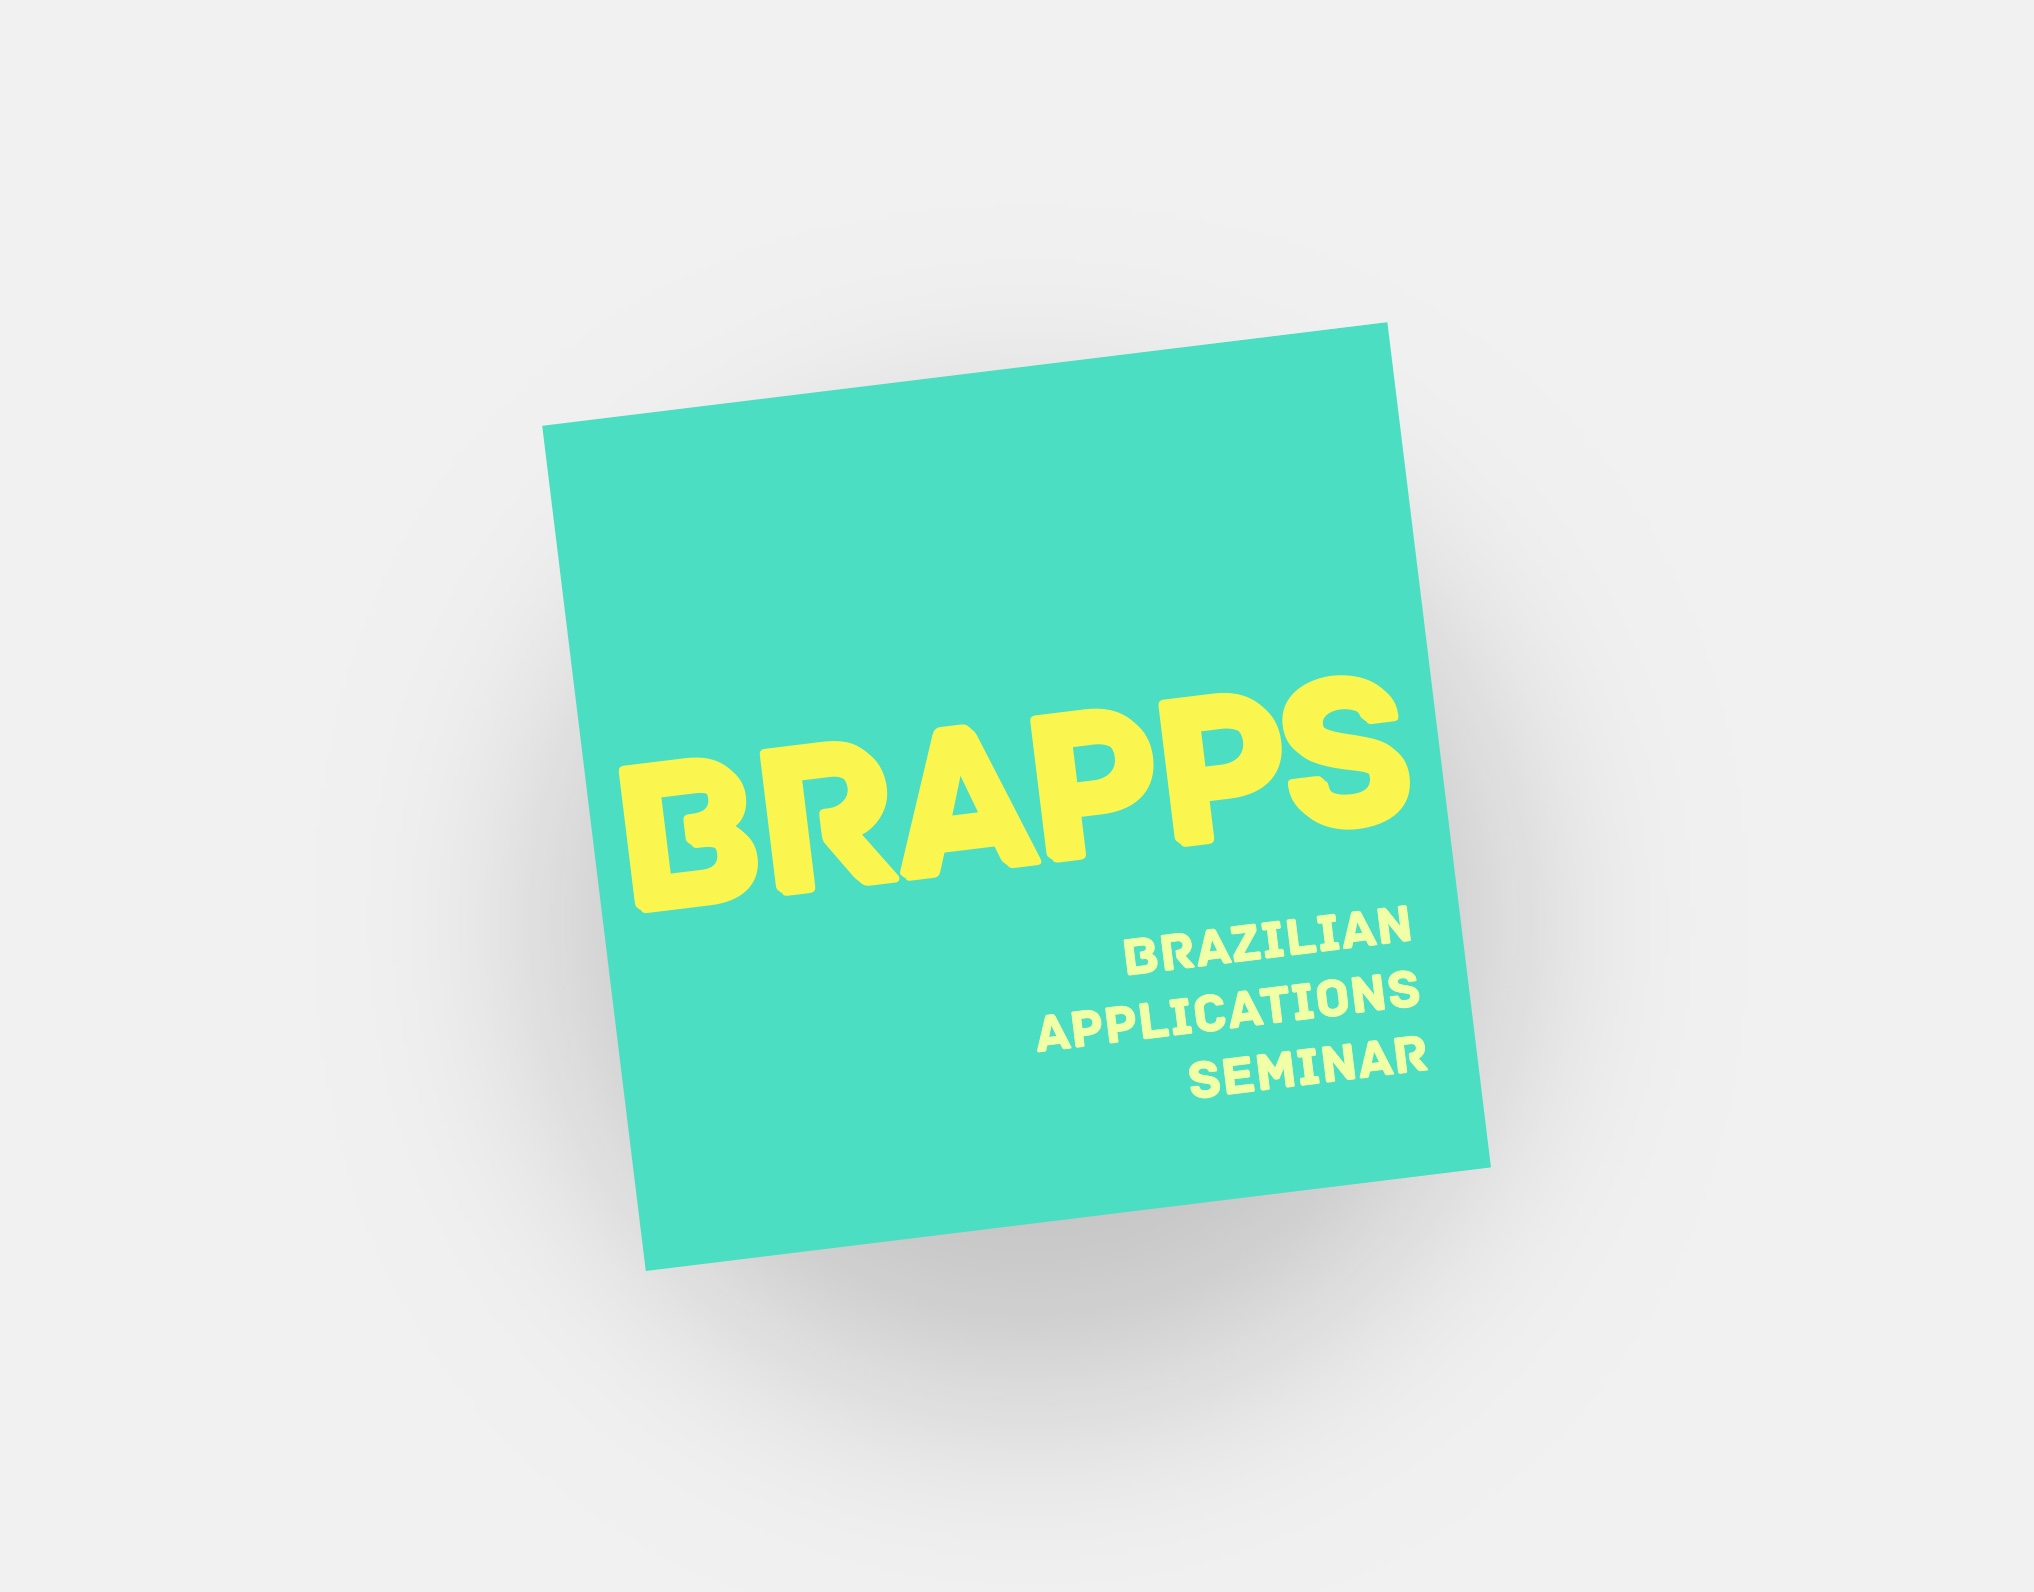 BRAPPS | Visual identity